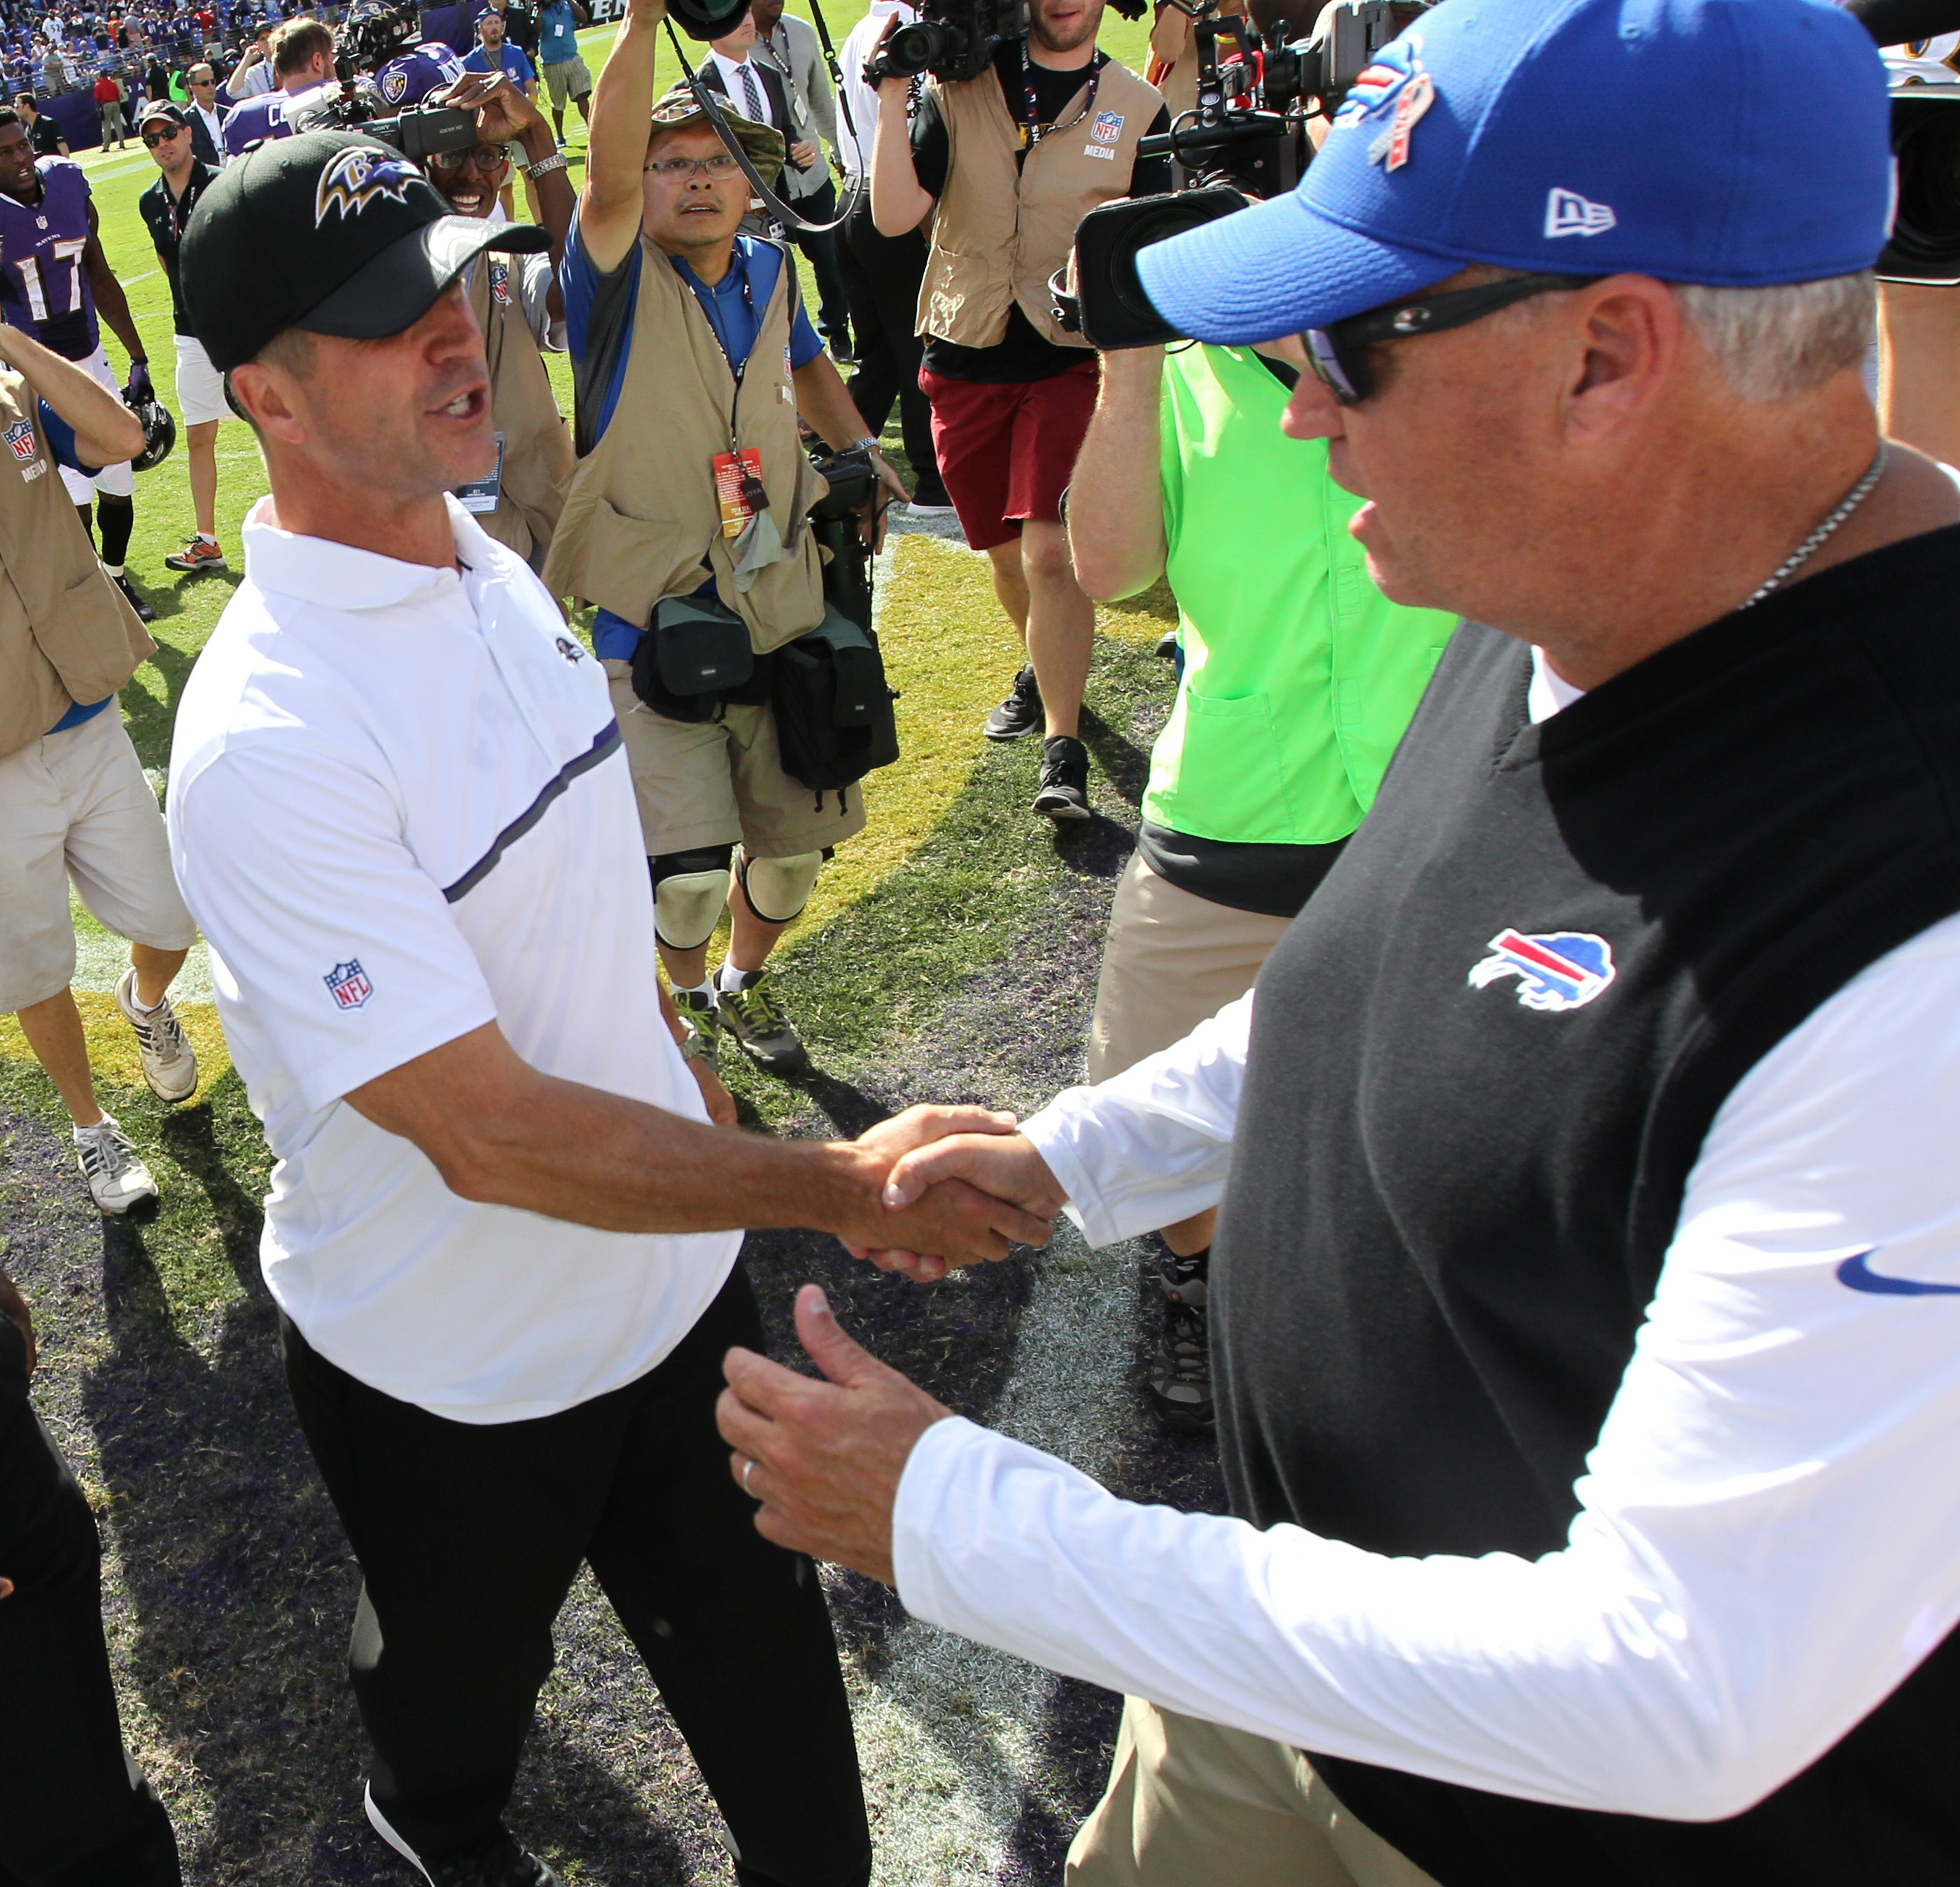 Buffalo Bills head coach Rex Ryan and Baltimore Ravens head coach John Harbaugh shake hands at the end of the game. They got very different grades in our report card.